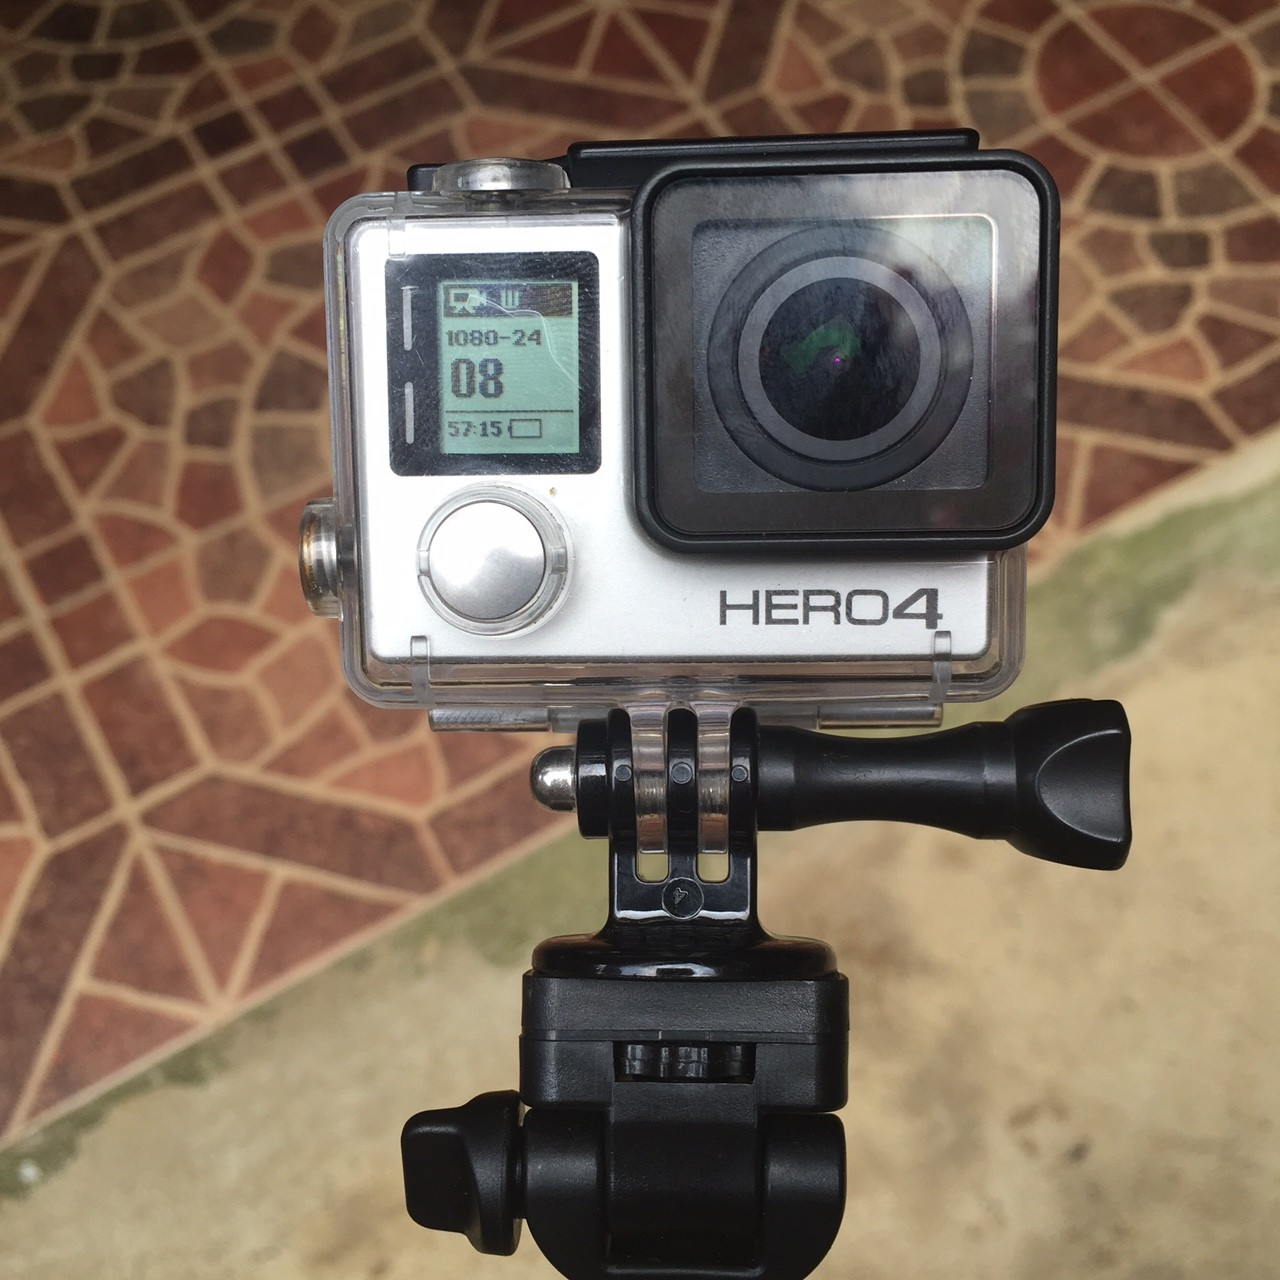 GoPro Hero 4 vs. 3 Black Edition. Things I immediately noticed. The Protune flat color profile on the  Hero 4 now looks very neutral – the Hero 3The lens seems to be the same on both, at least the typical GoPro fisheye and field of view is very similar. The  GoPro Hero 4 Black Edition video modes.